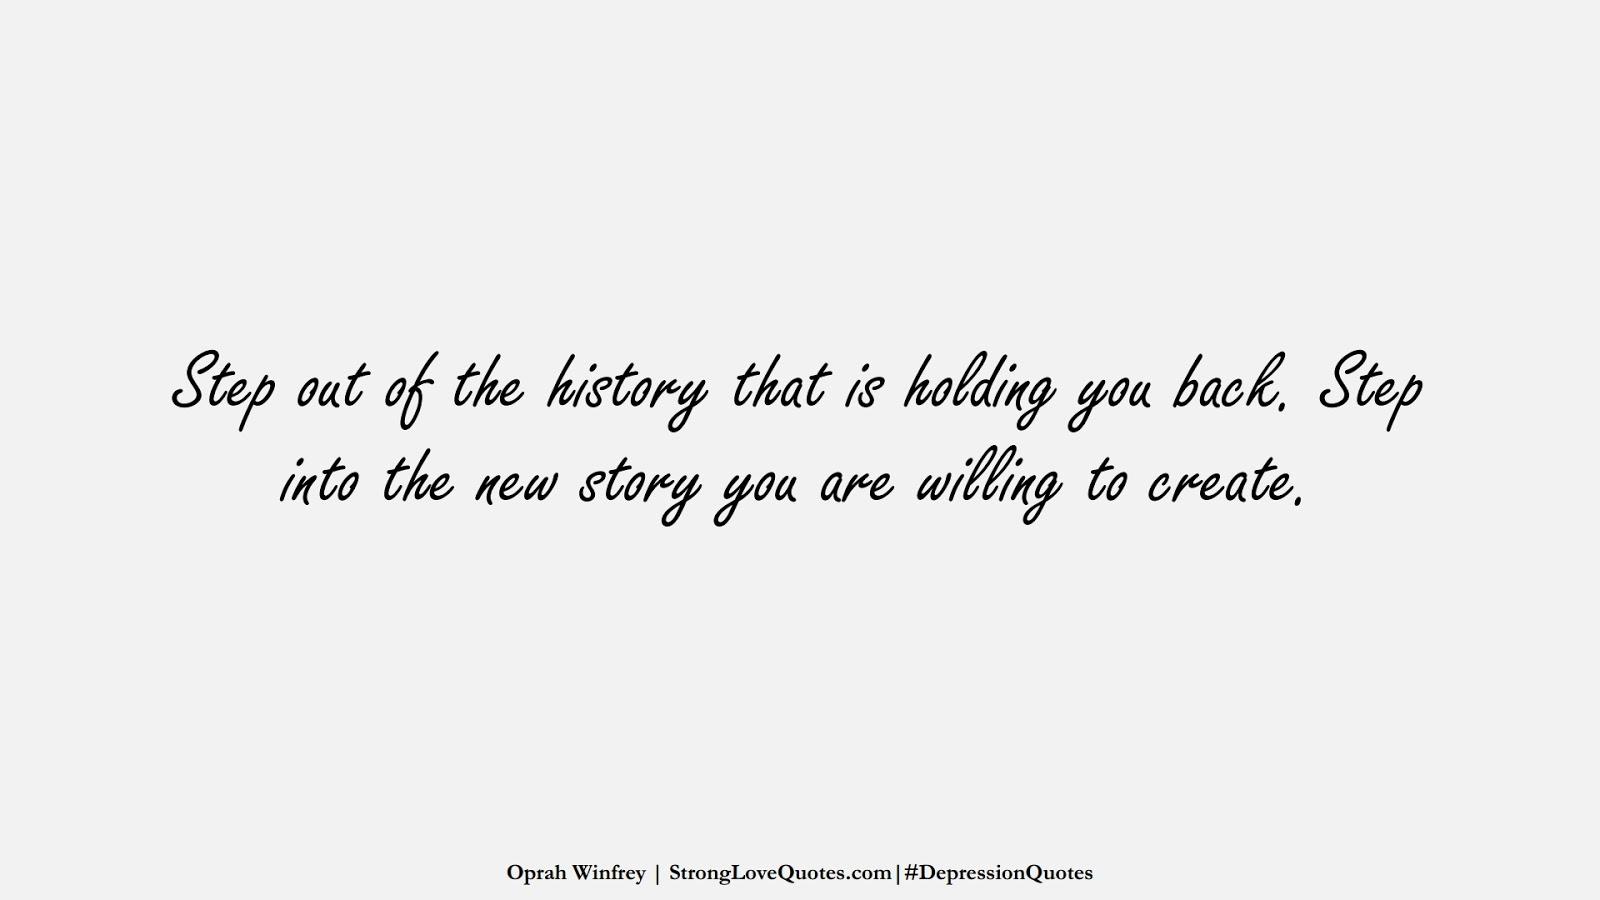 Step out of the history that is holding you back. Step into the new story you are willing to create. (Oprah Winfrey);  #DepressionQuotes